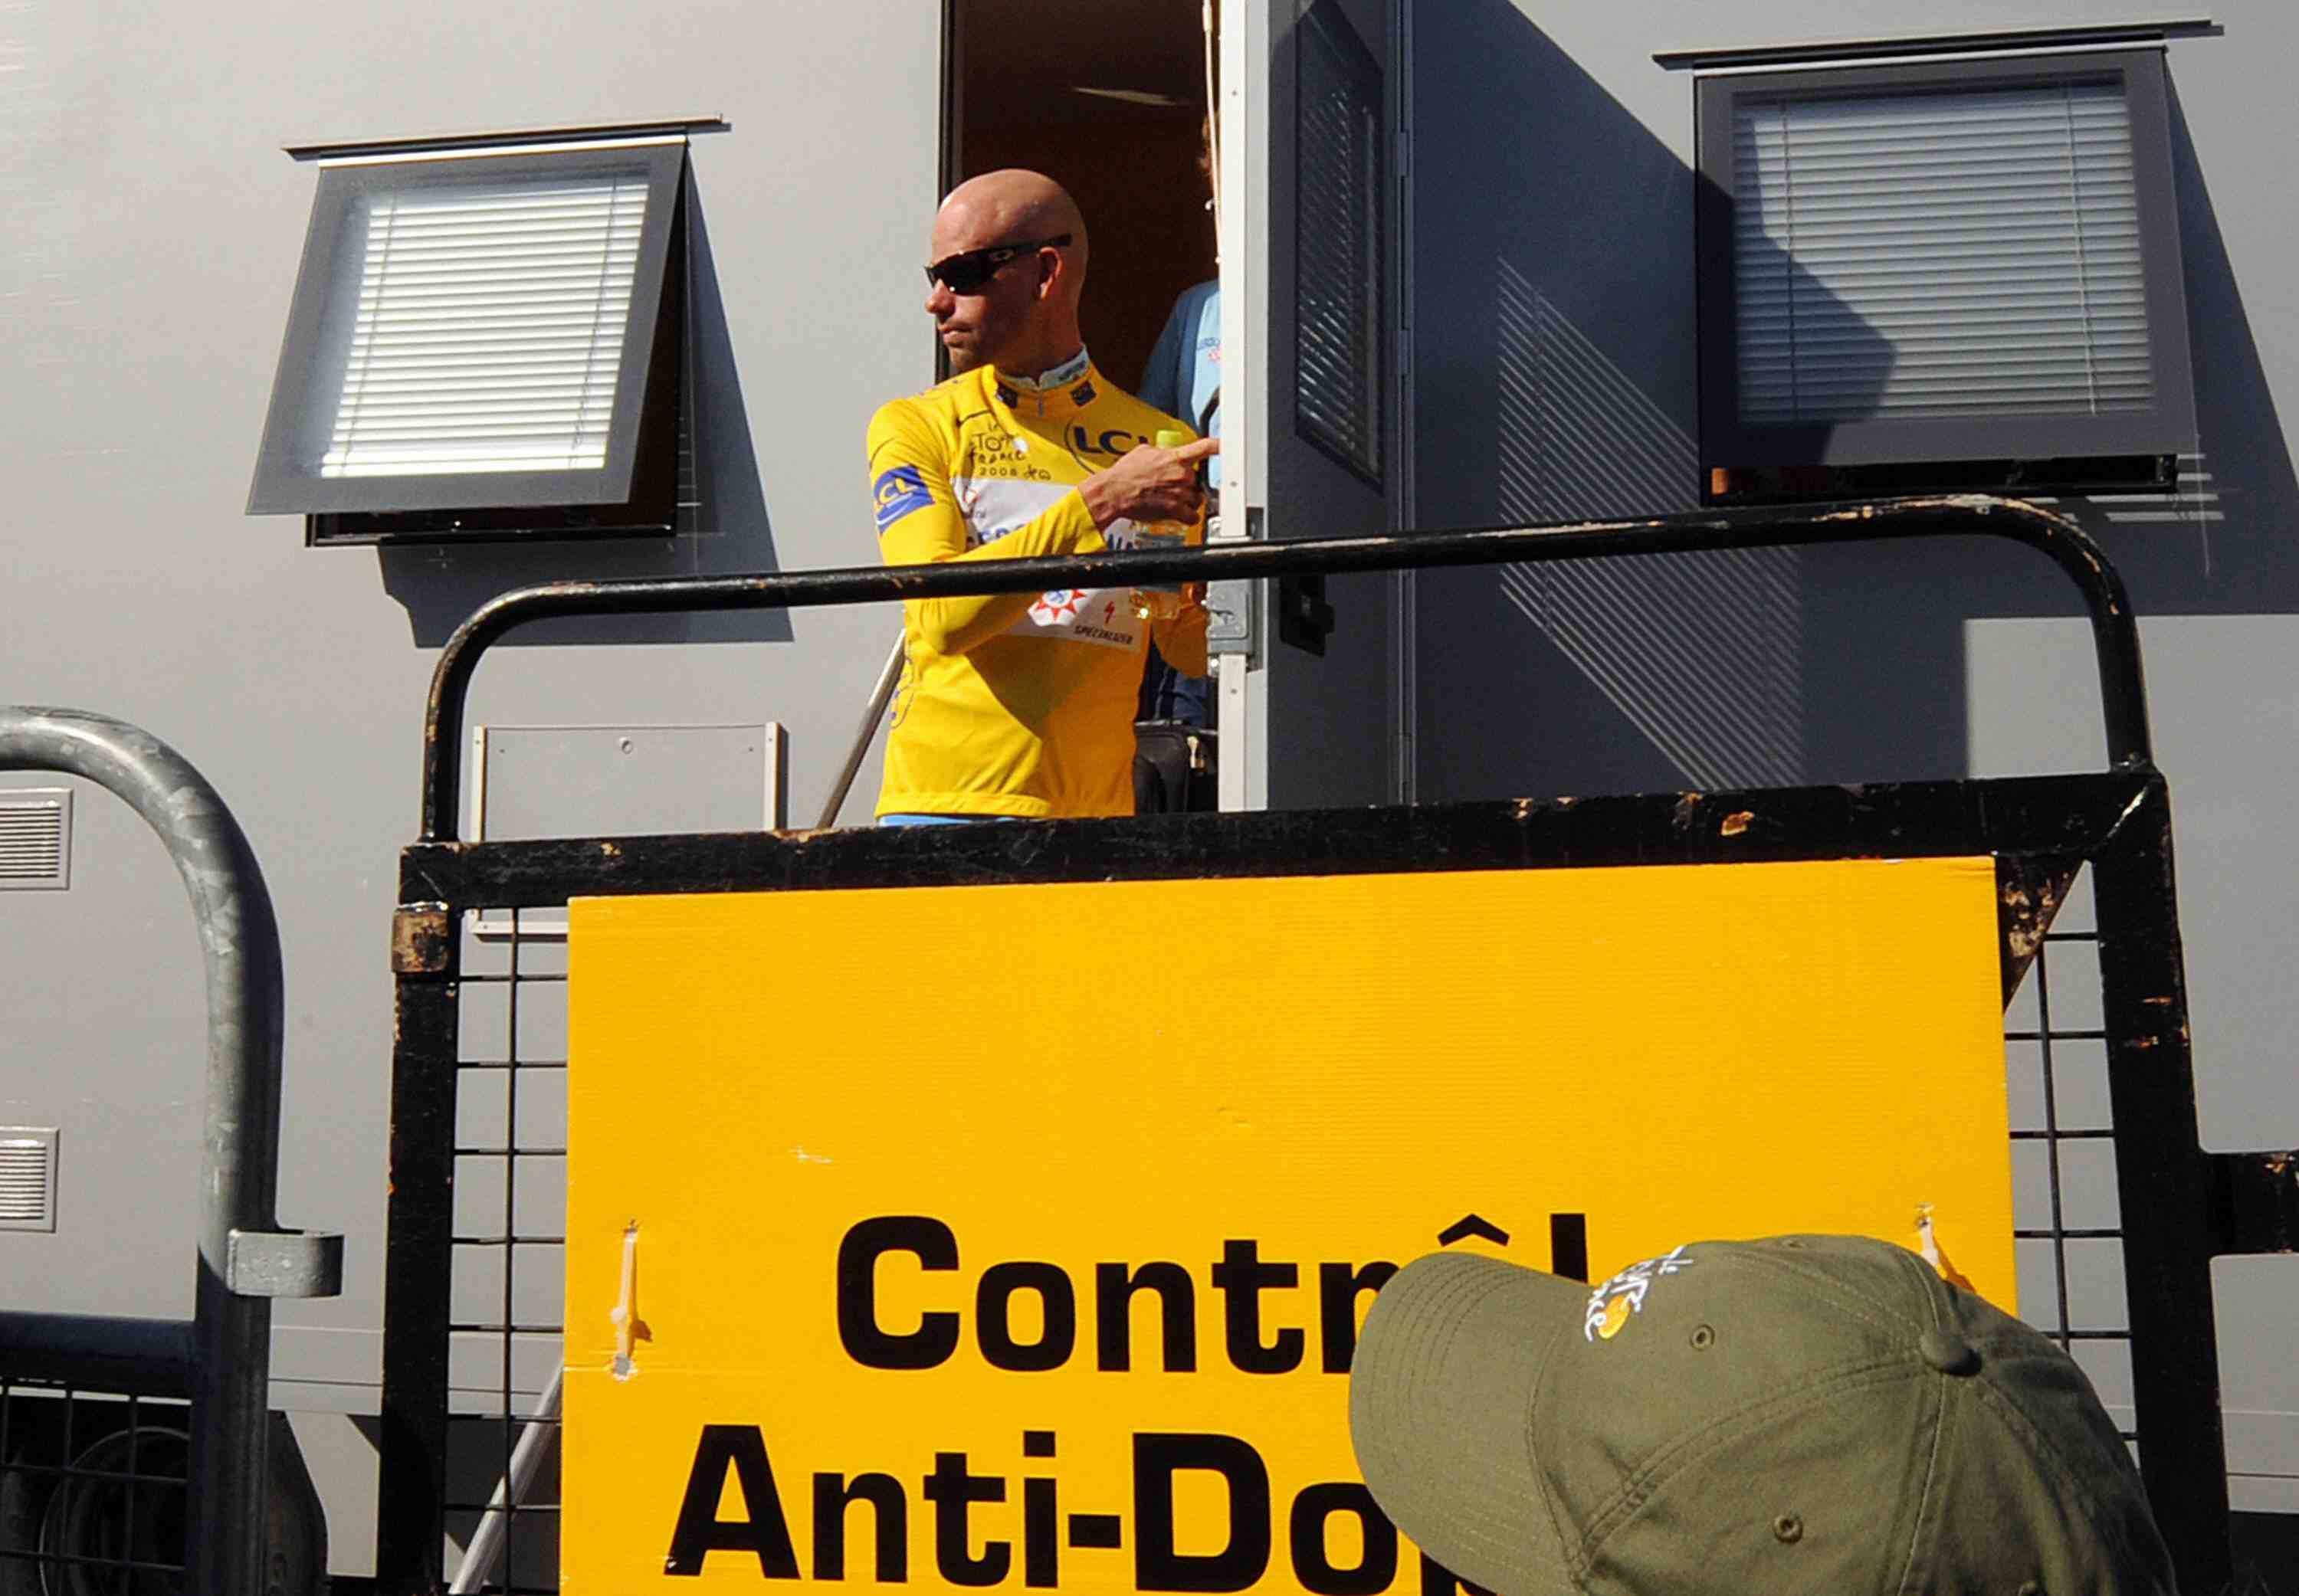 German cyclist Stefan Schumacher leaves the Tour de France doping control while leading the race in early July 2008.